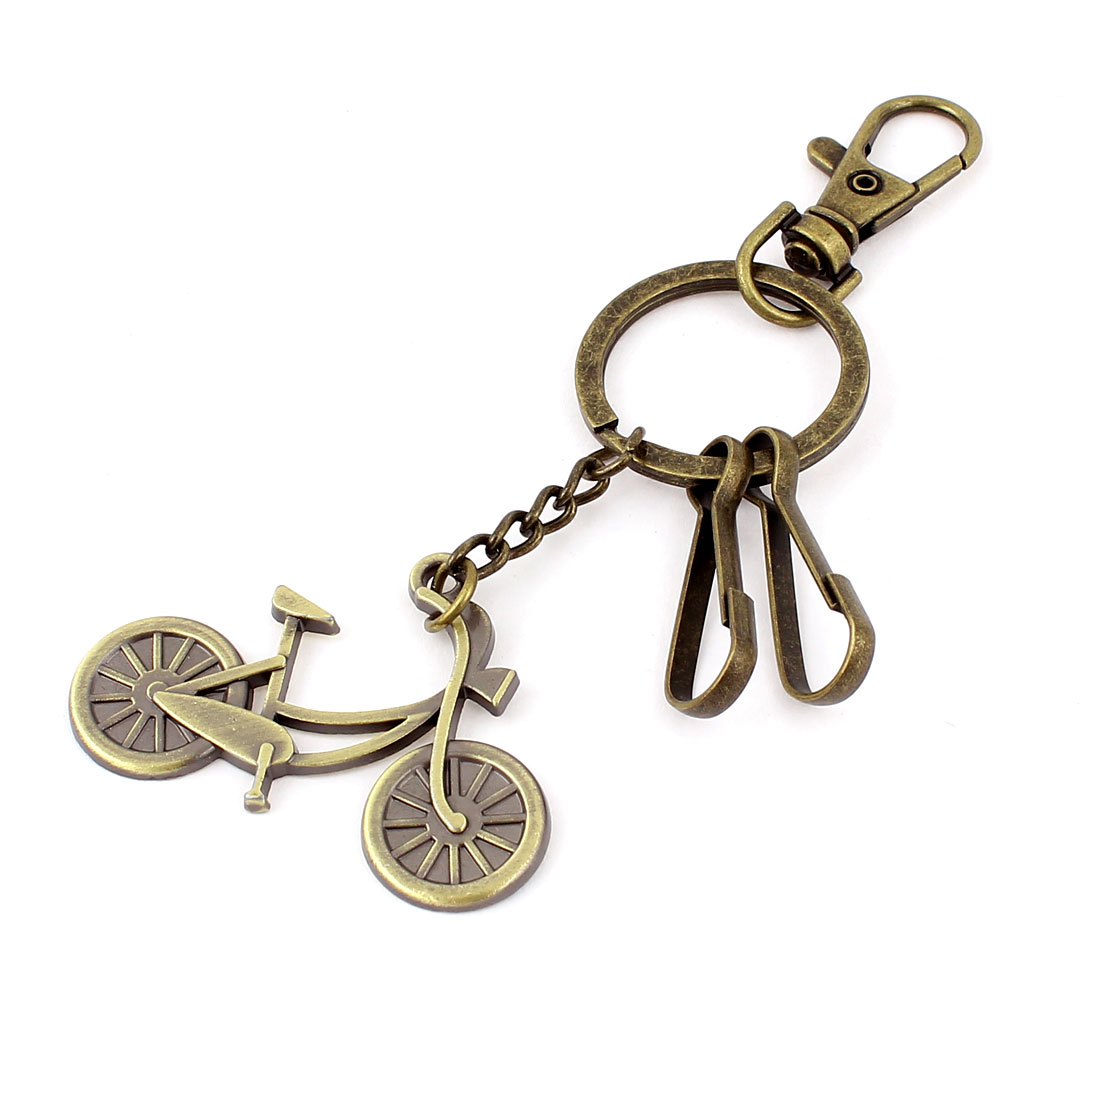 Metal Bicycle Shaped Pendant Swivel Lobster Clasp Keychain Keyring Bronze Tone